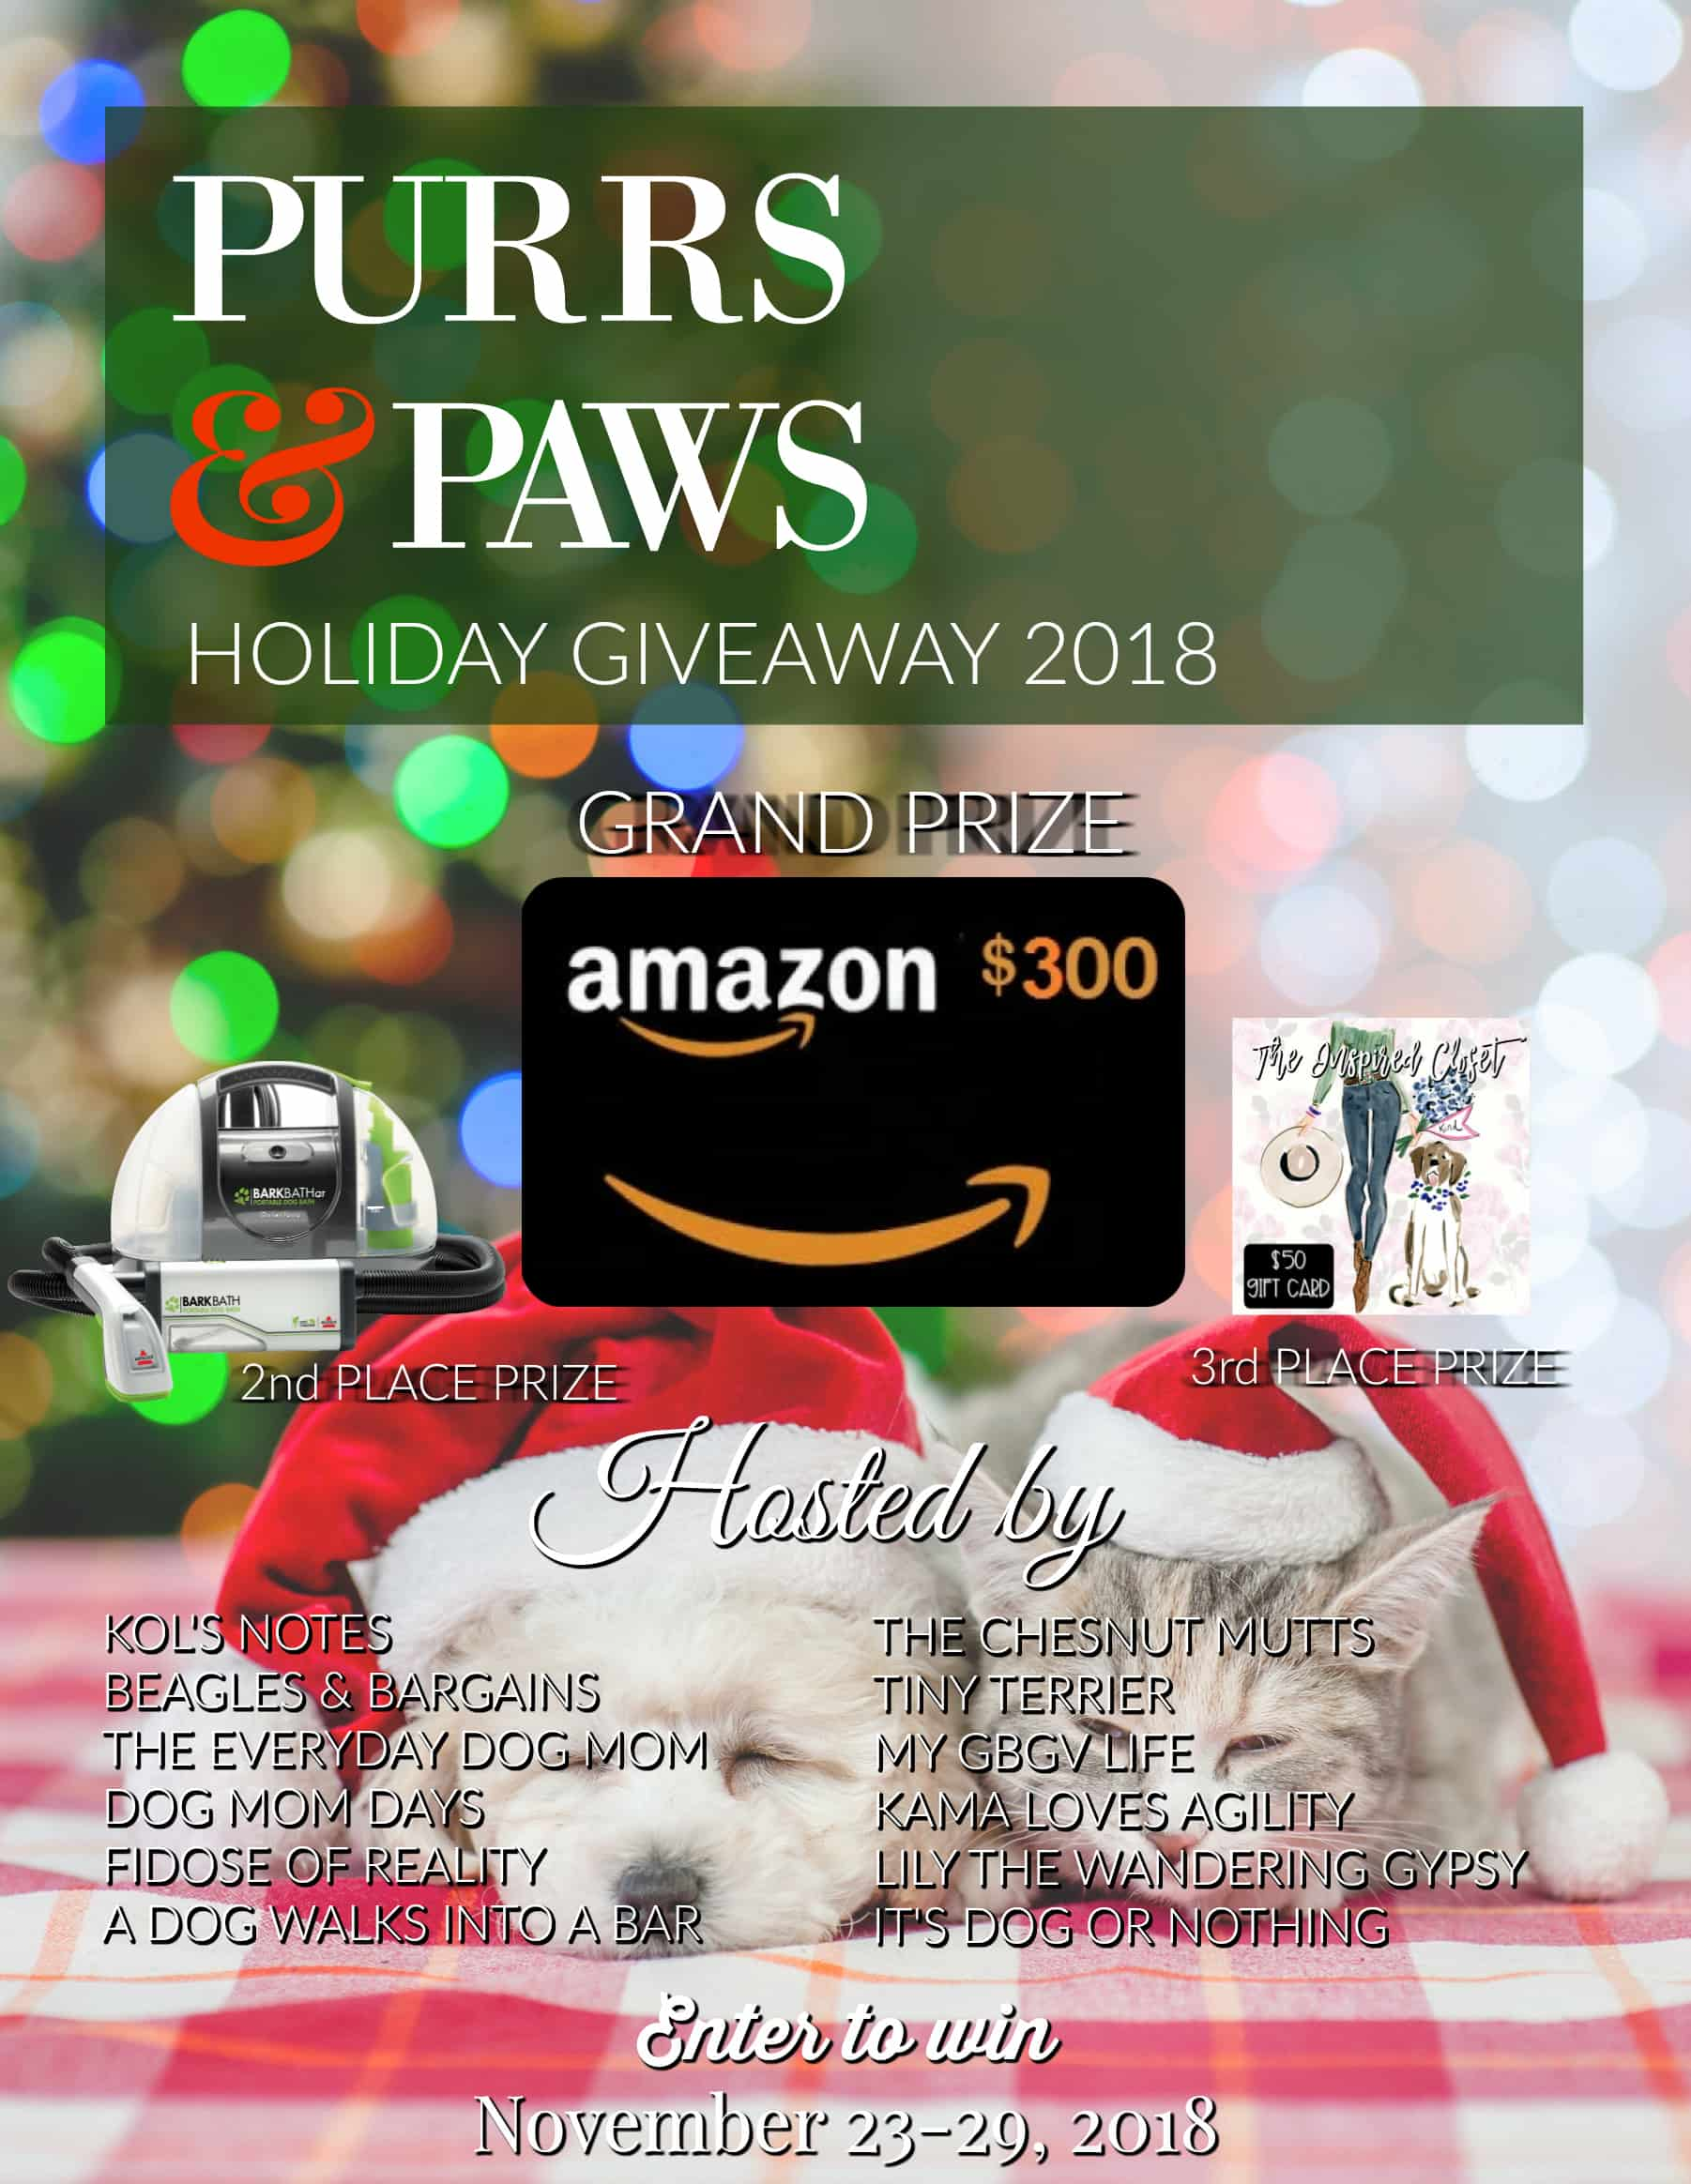 Win $500 in Prizes with the Purrs & Paws Holiday Giveaway!